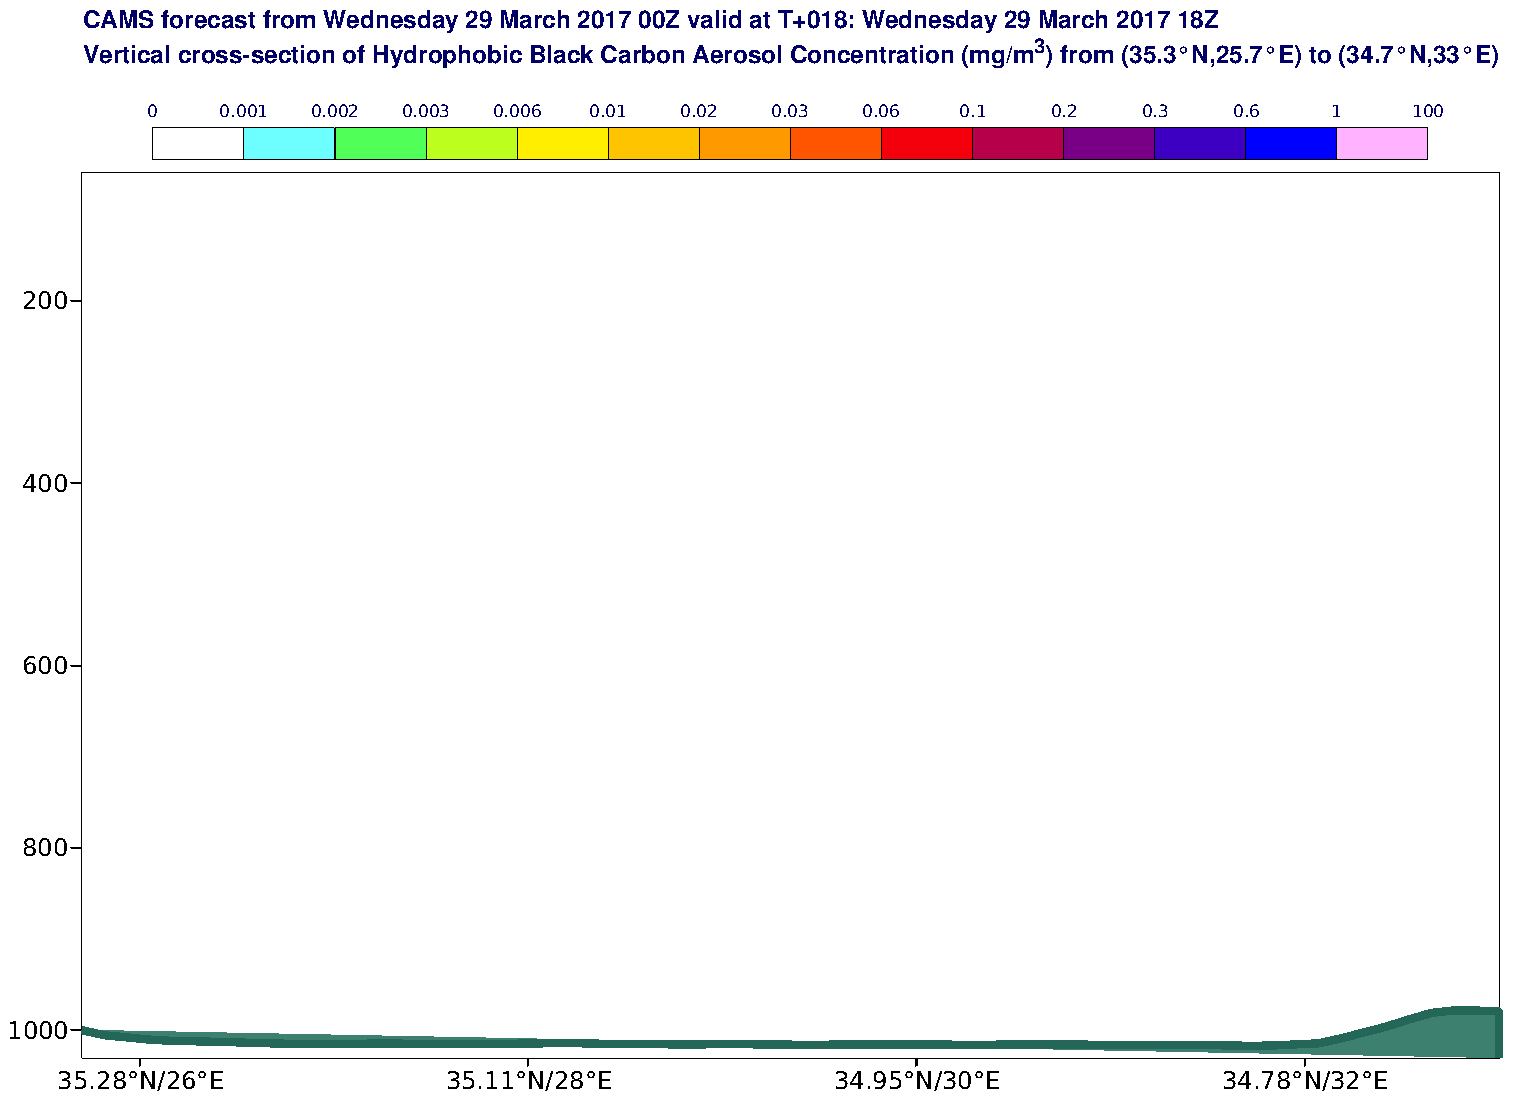 Vertical cross-section of Hydrophobic Black Carbon Aerosol Concentration (mg/m3) valid at T18 - 2017-03-29 18:00